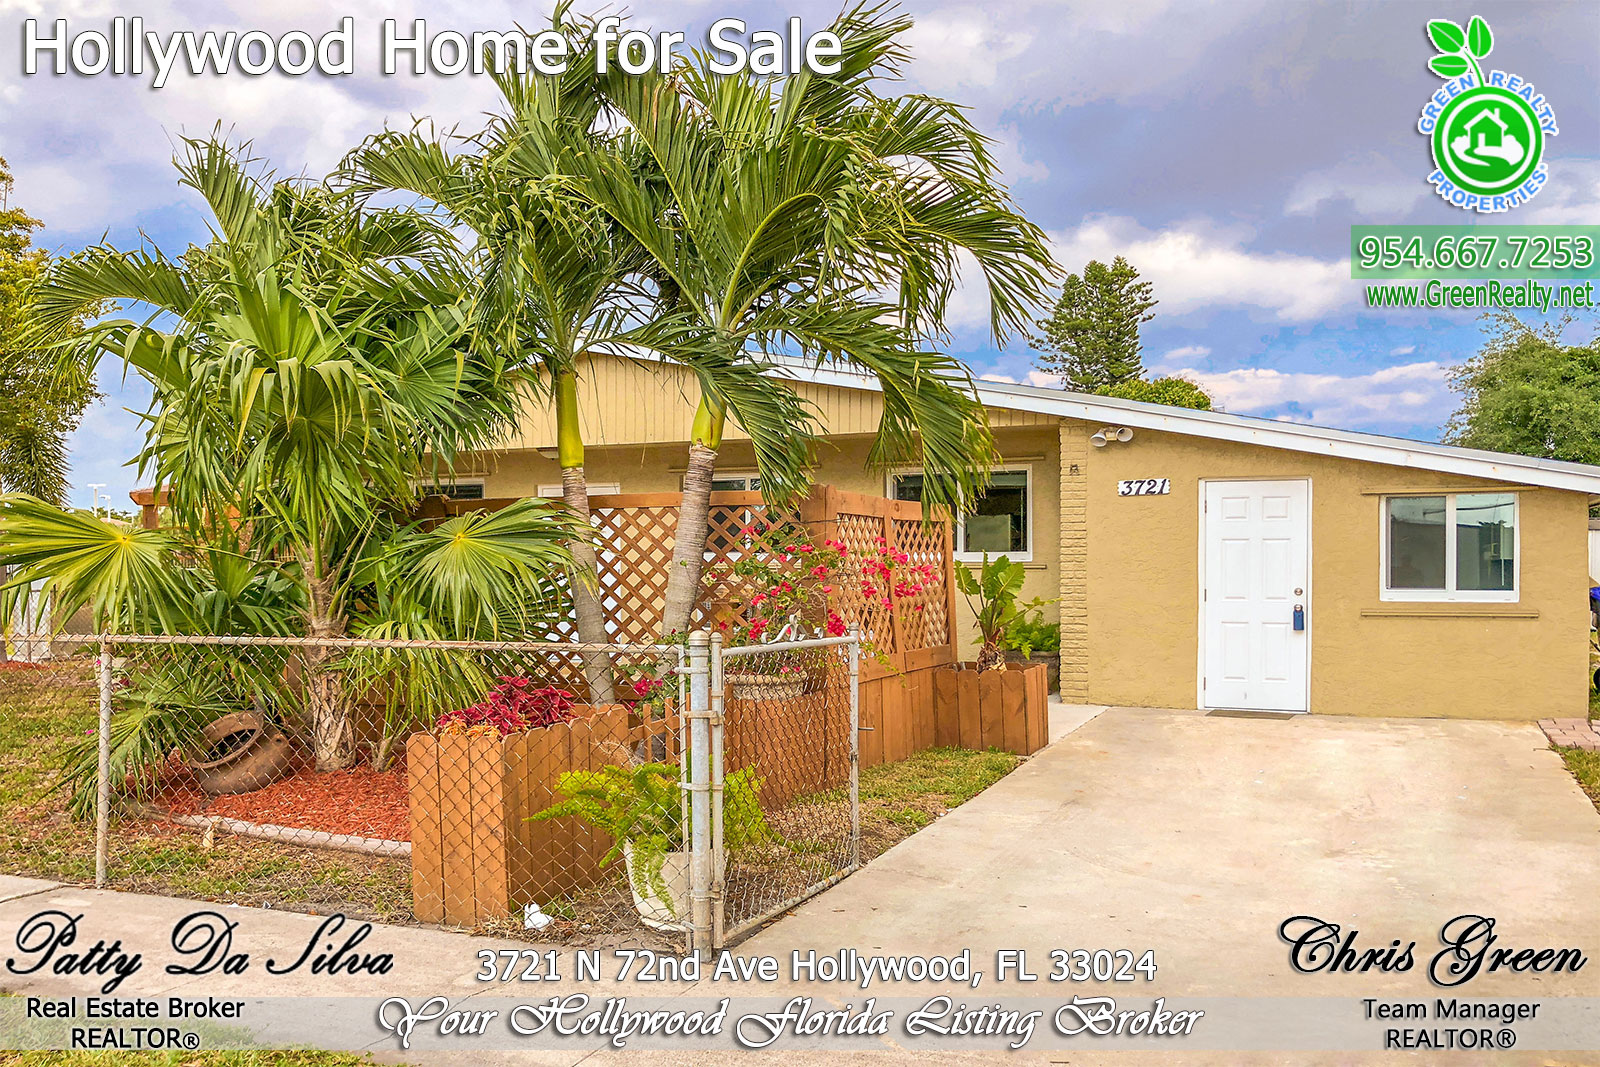 2 Hollywood-Florida-Real-Estate-Listing-Patty-Da-Silva-Green-Realty-properties-2